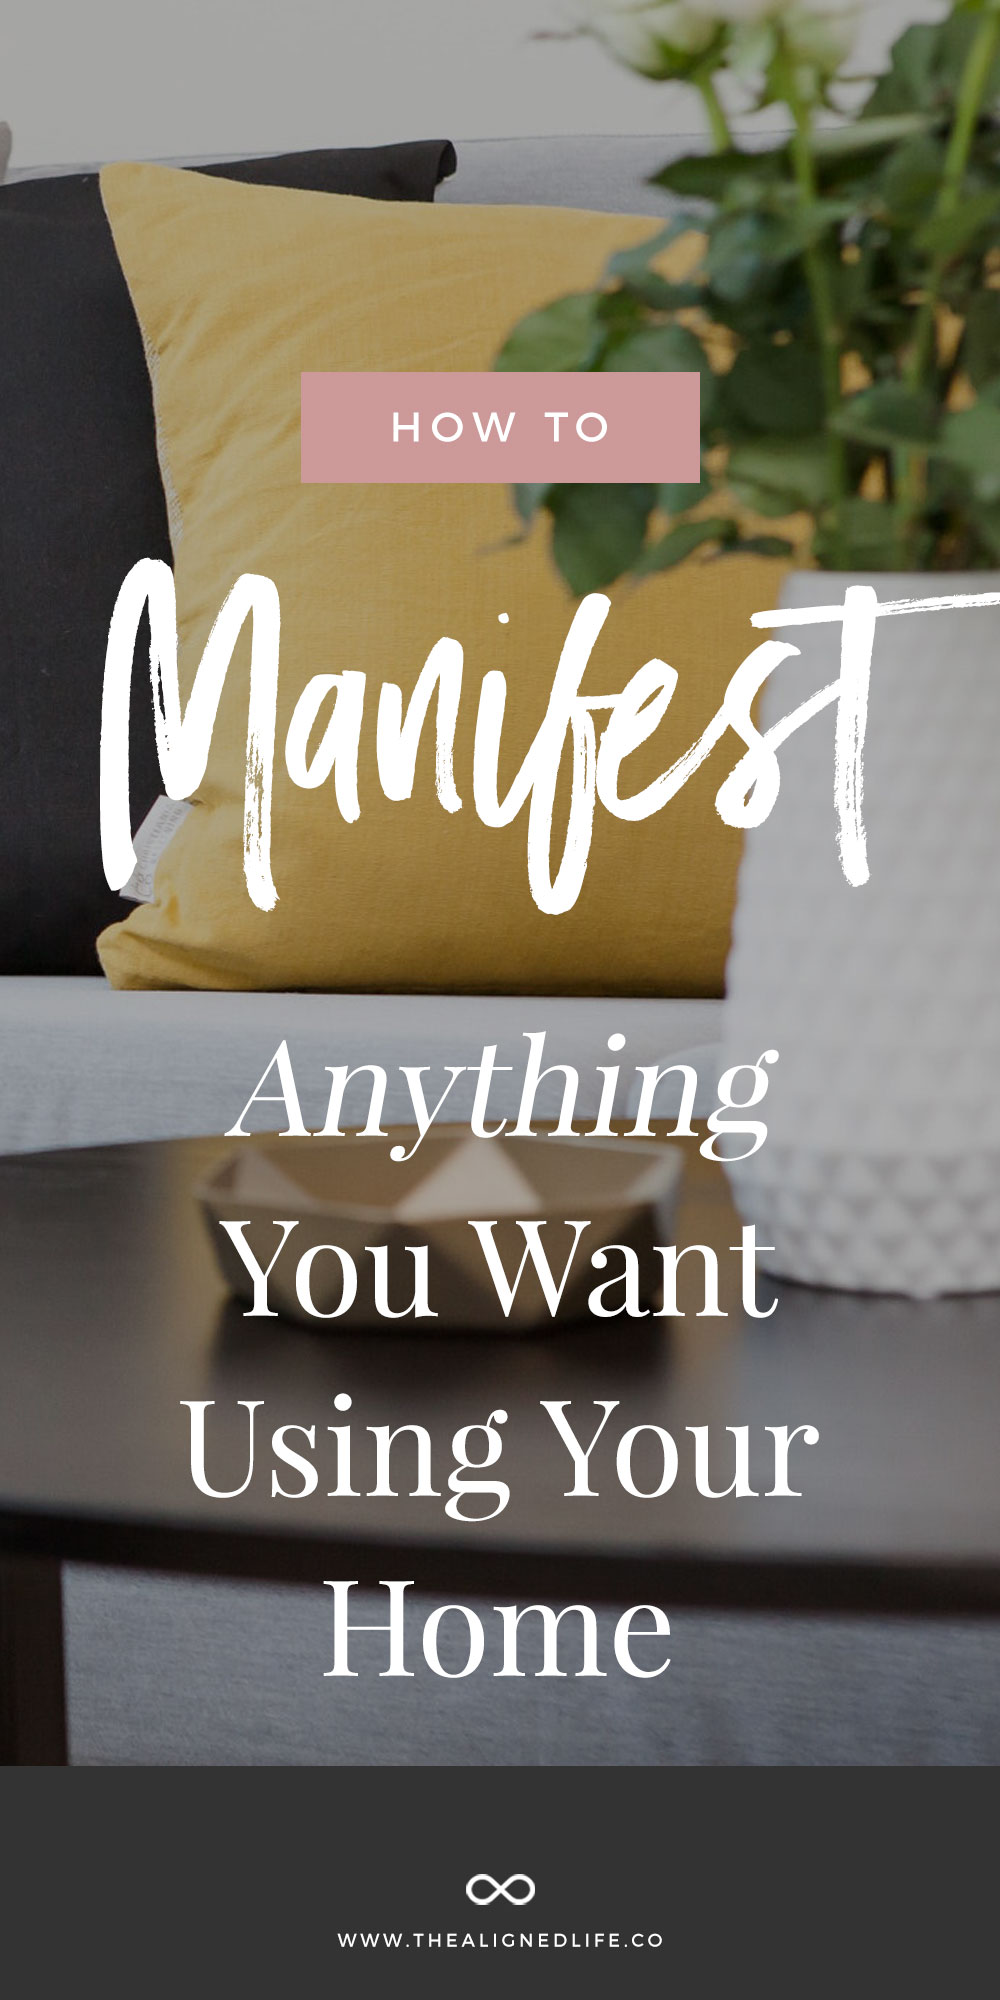 How to Manifest Anything You Want Using Your Home